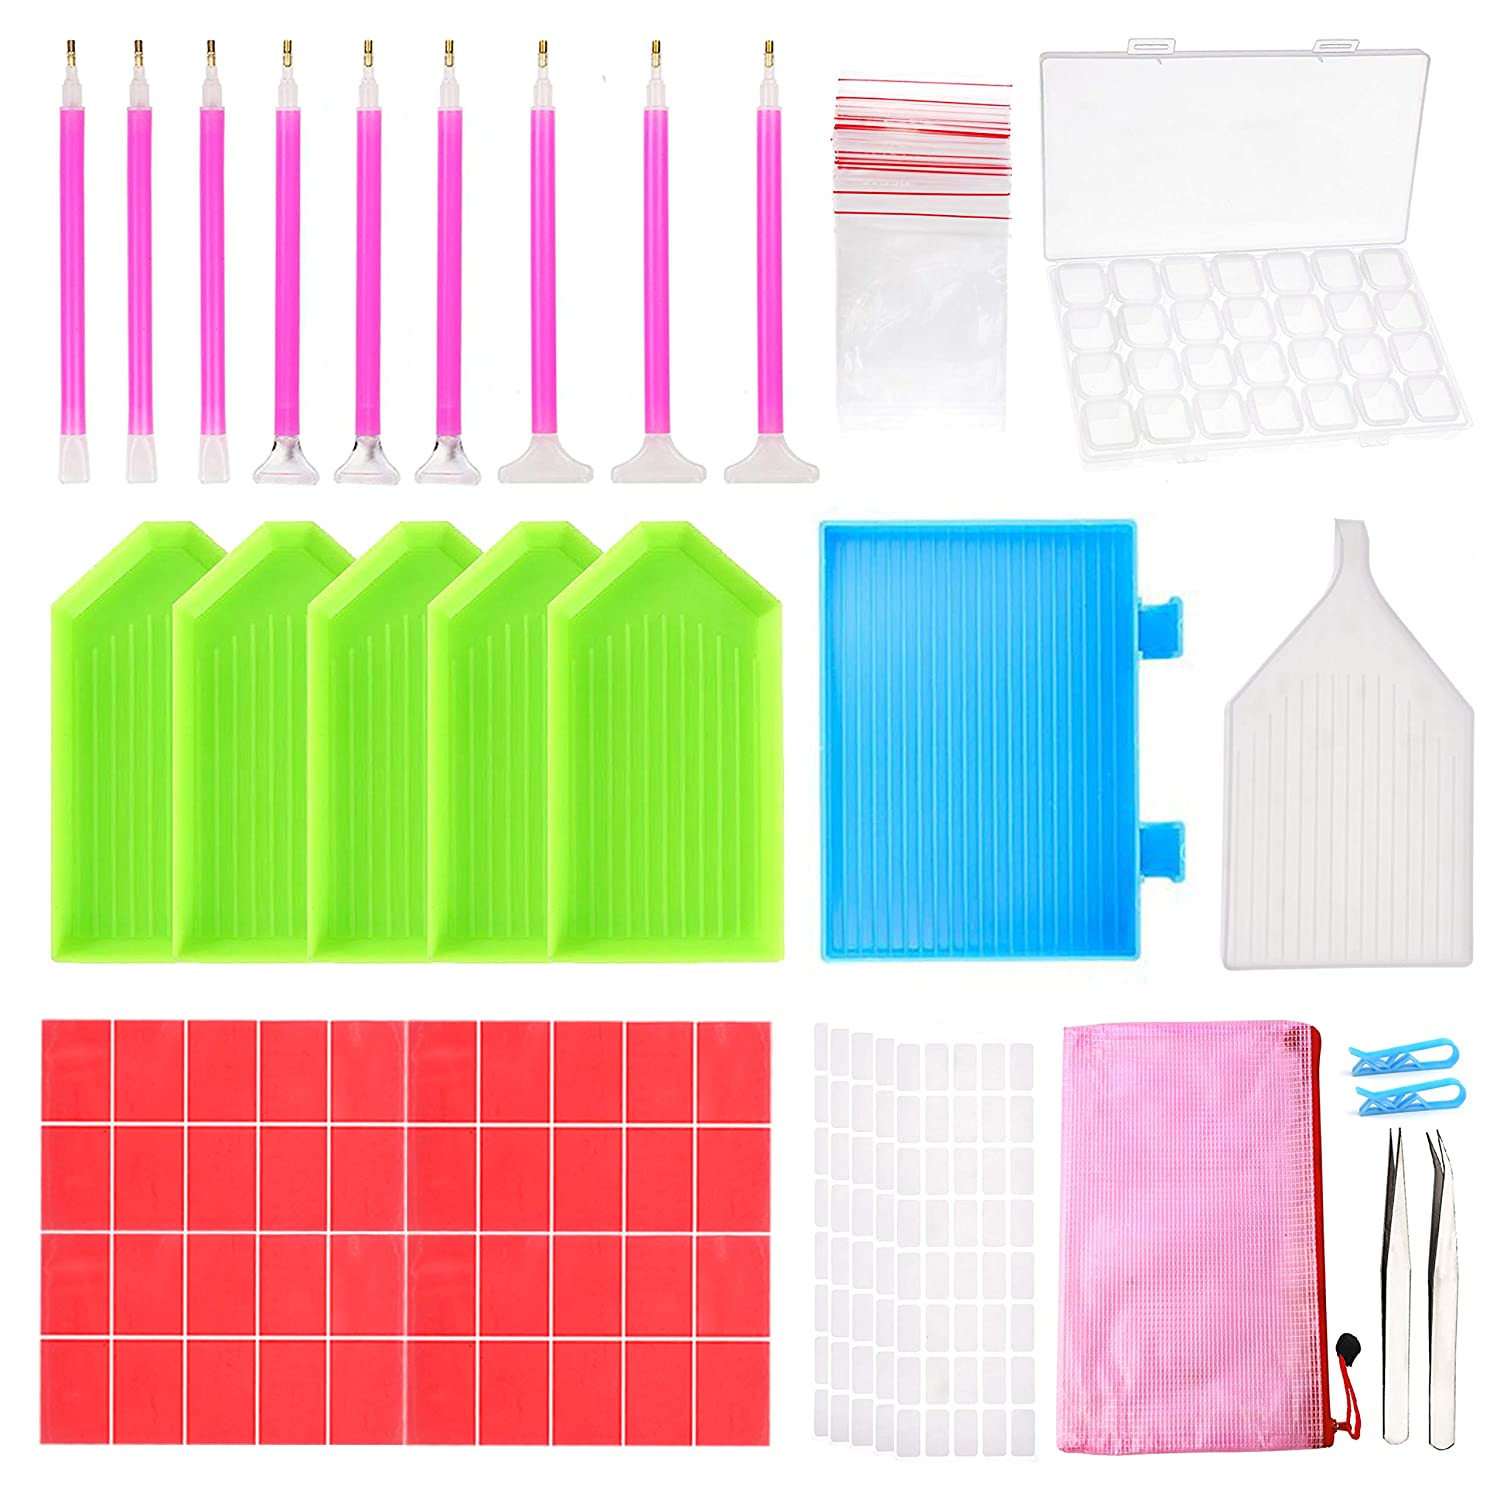 Outuxed 78Pcs Diamond Painting Tools 5D DIY Cross Stitch Tool Set Embroidery Sewing Accessories with Storage Box and Stickers for Art Crafts